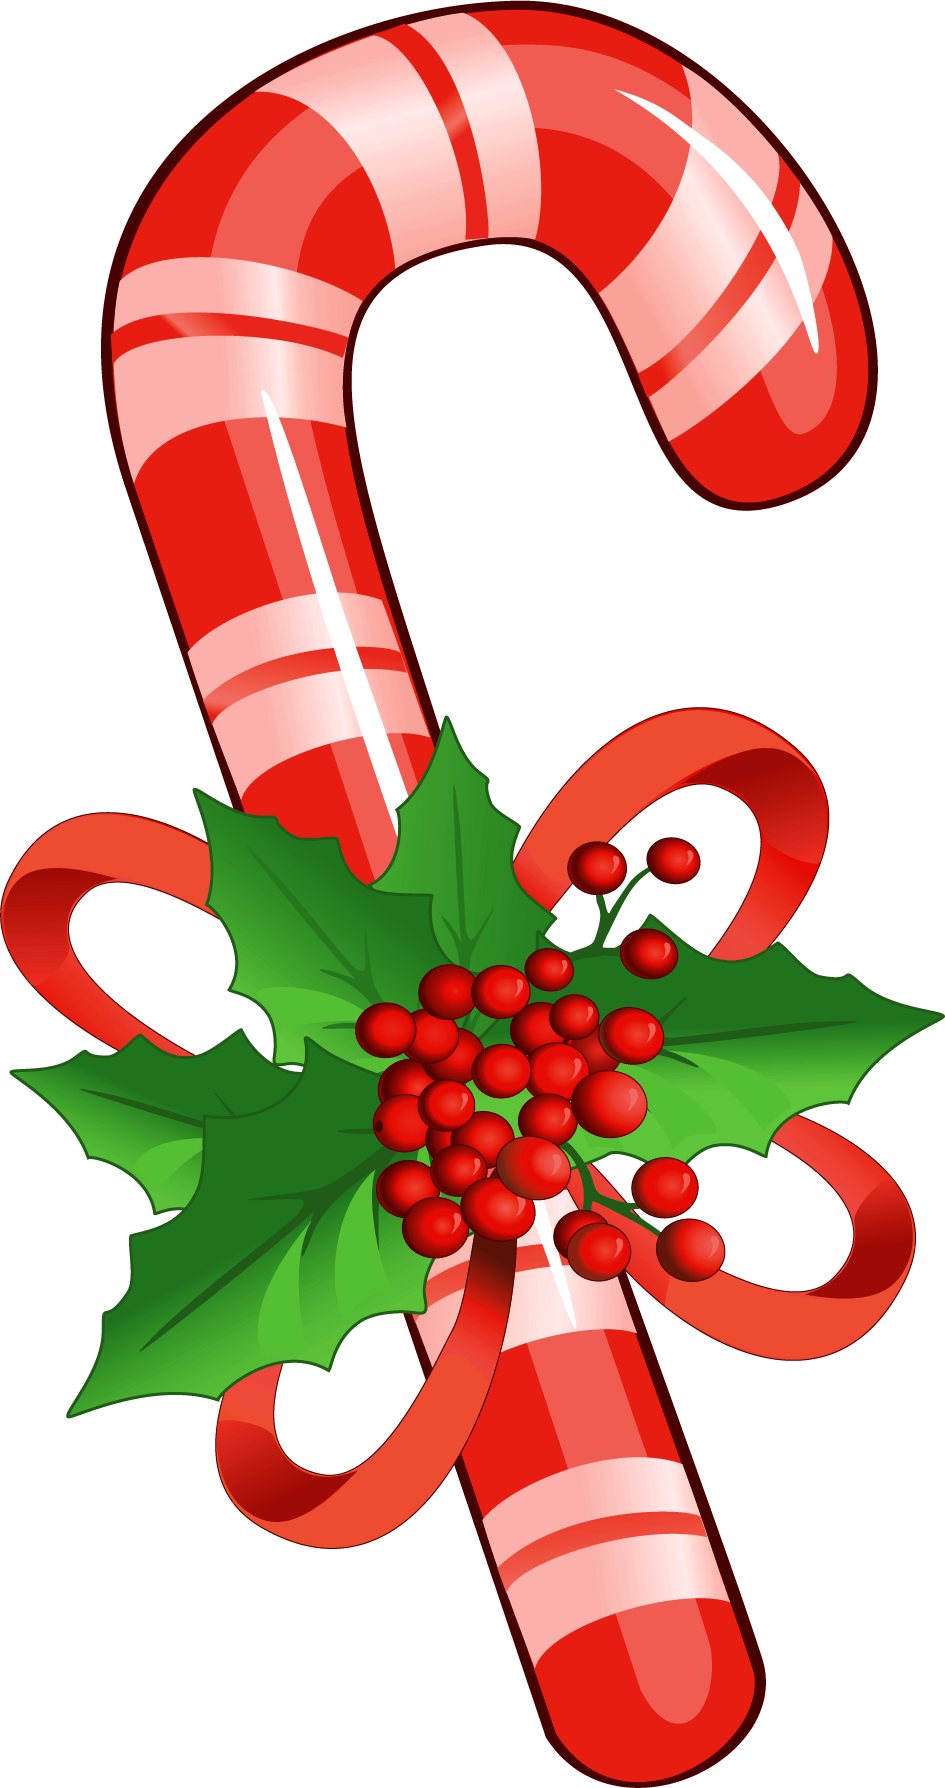 945x1788 Candy Cane With Mistletoe Png Clipartu200b Gallery Yopriceville